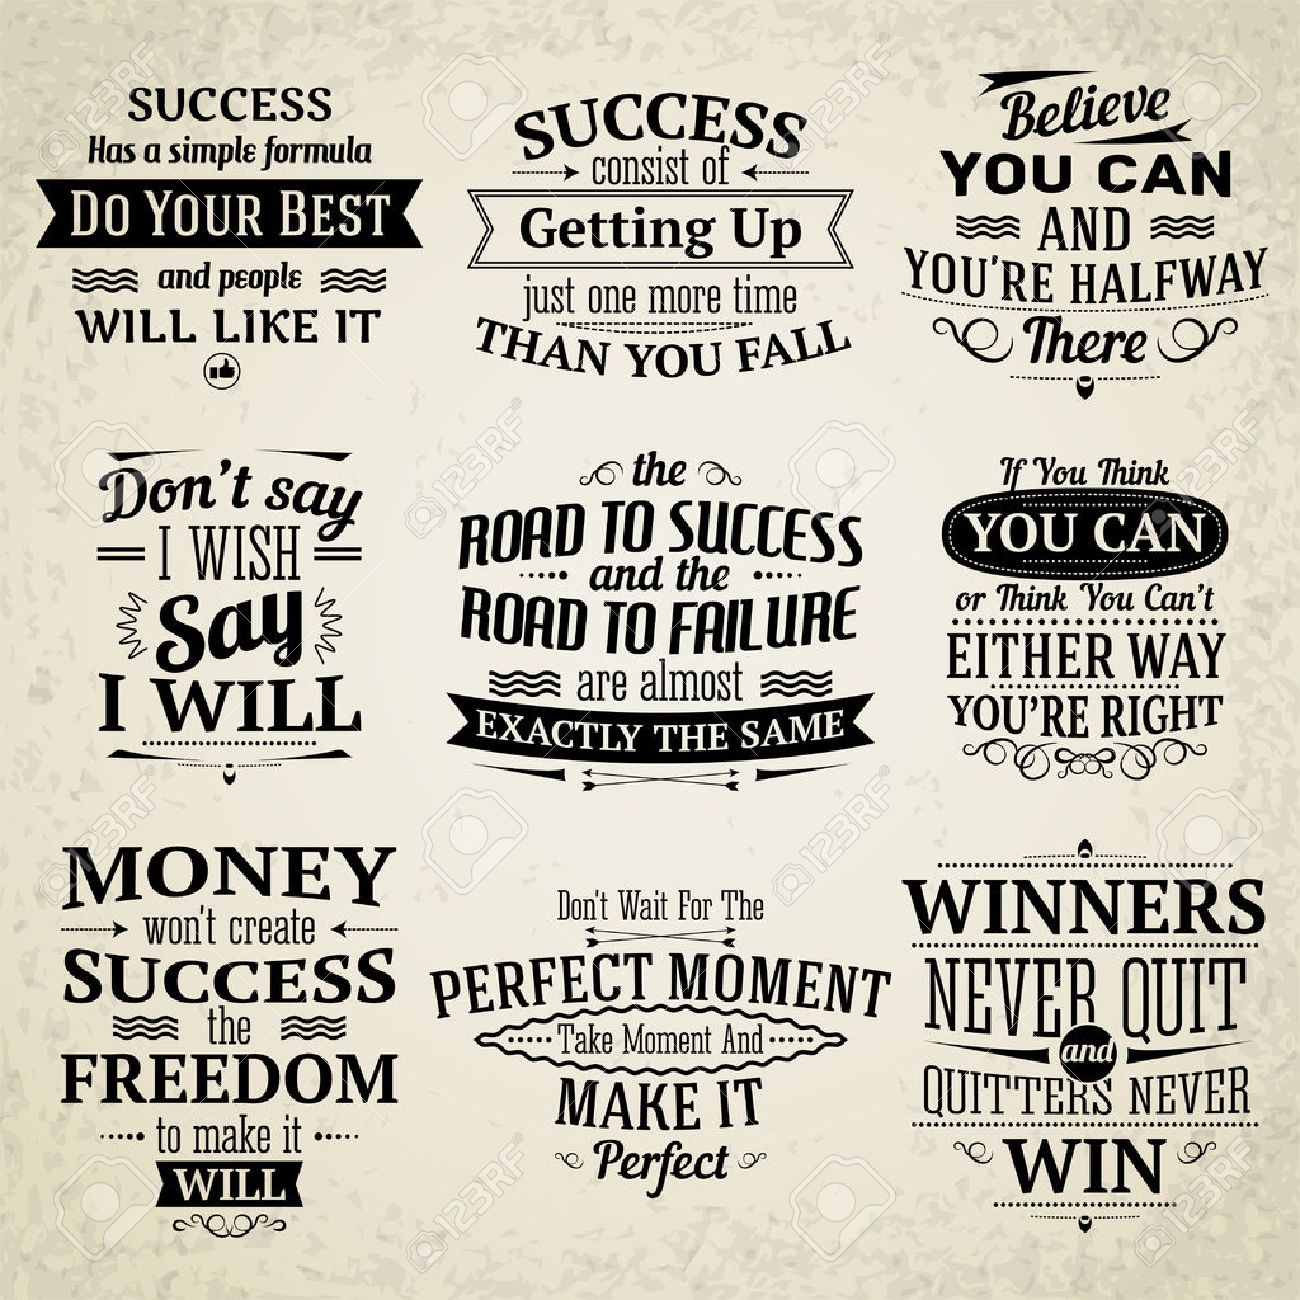 Road To Success Quotes Success Motivational And Inspirational Creative Quotes Emblems